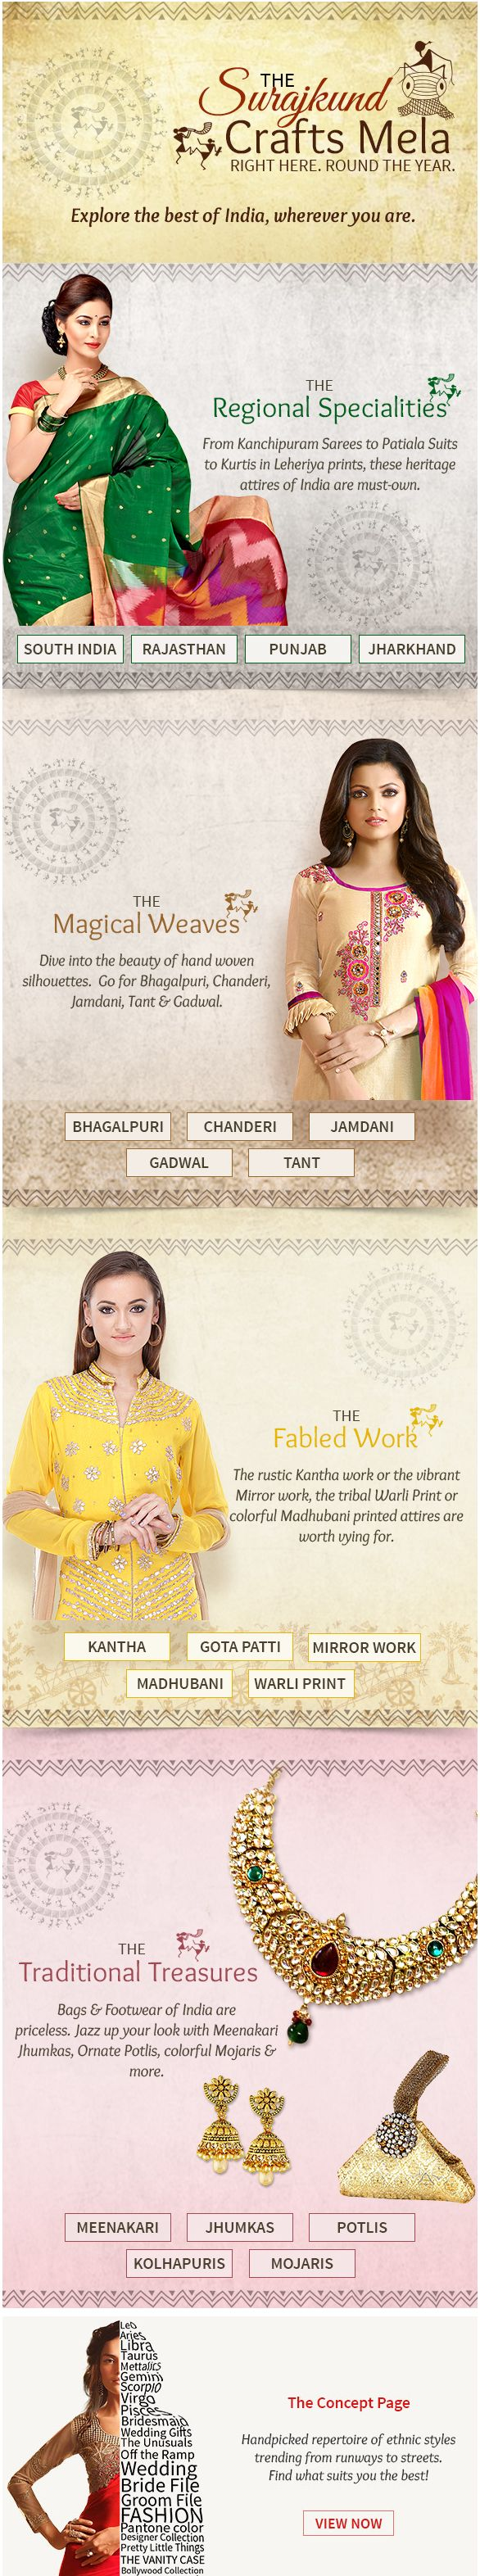 Explore crafts and styles and thousands of regional and handcrafted specialities from all corners of India. Here you get Kanchipuram Sarees to Patiala Suits to Kurtis in Leheriya prints. The ensembles are weaved in Bhagalpuri, Chanderi, Jamdani, Gadwal & Tant. The intricate work is Mirror, Kantha, Gota Patti & more. You also get traditional Meenakari, Jhumkas, Necklaces, Potlis & Mojaris. Shop till you drop!